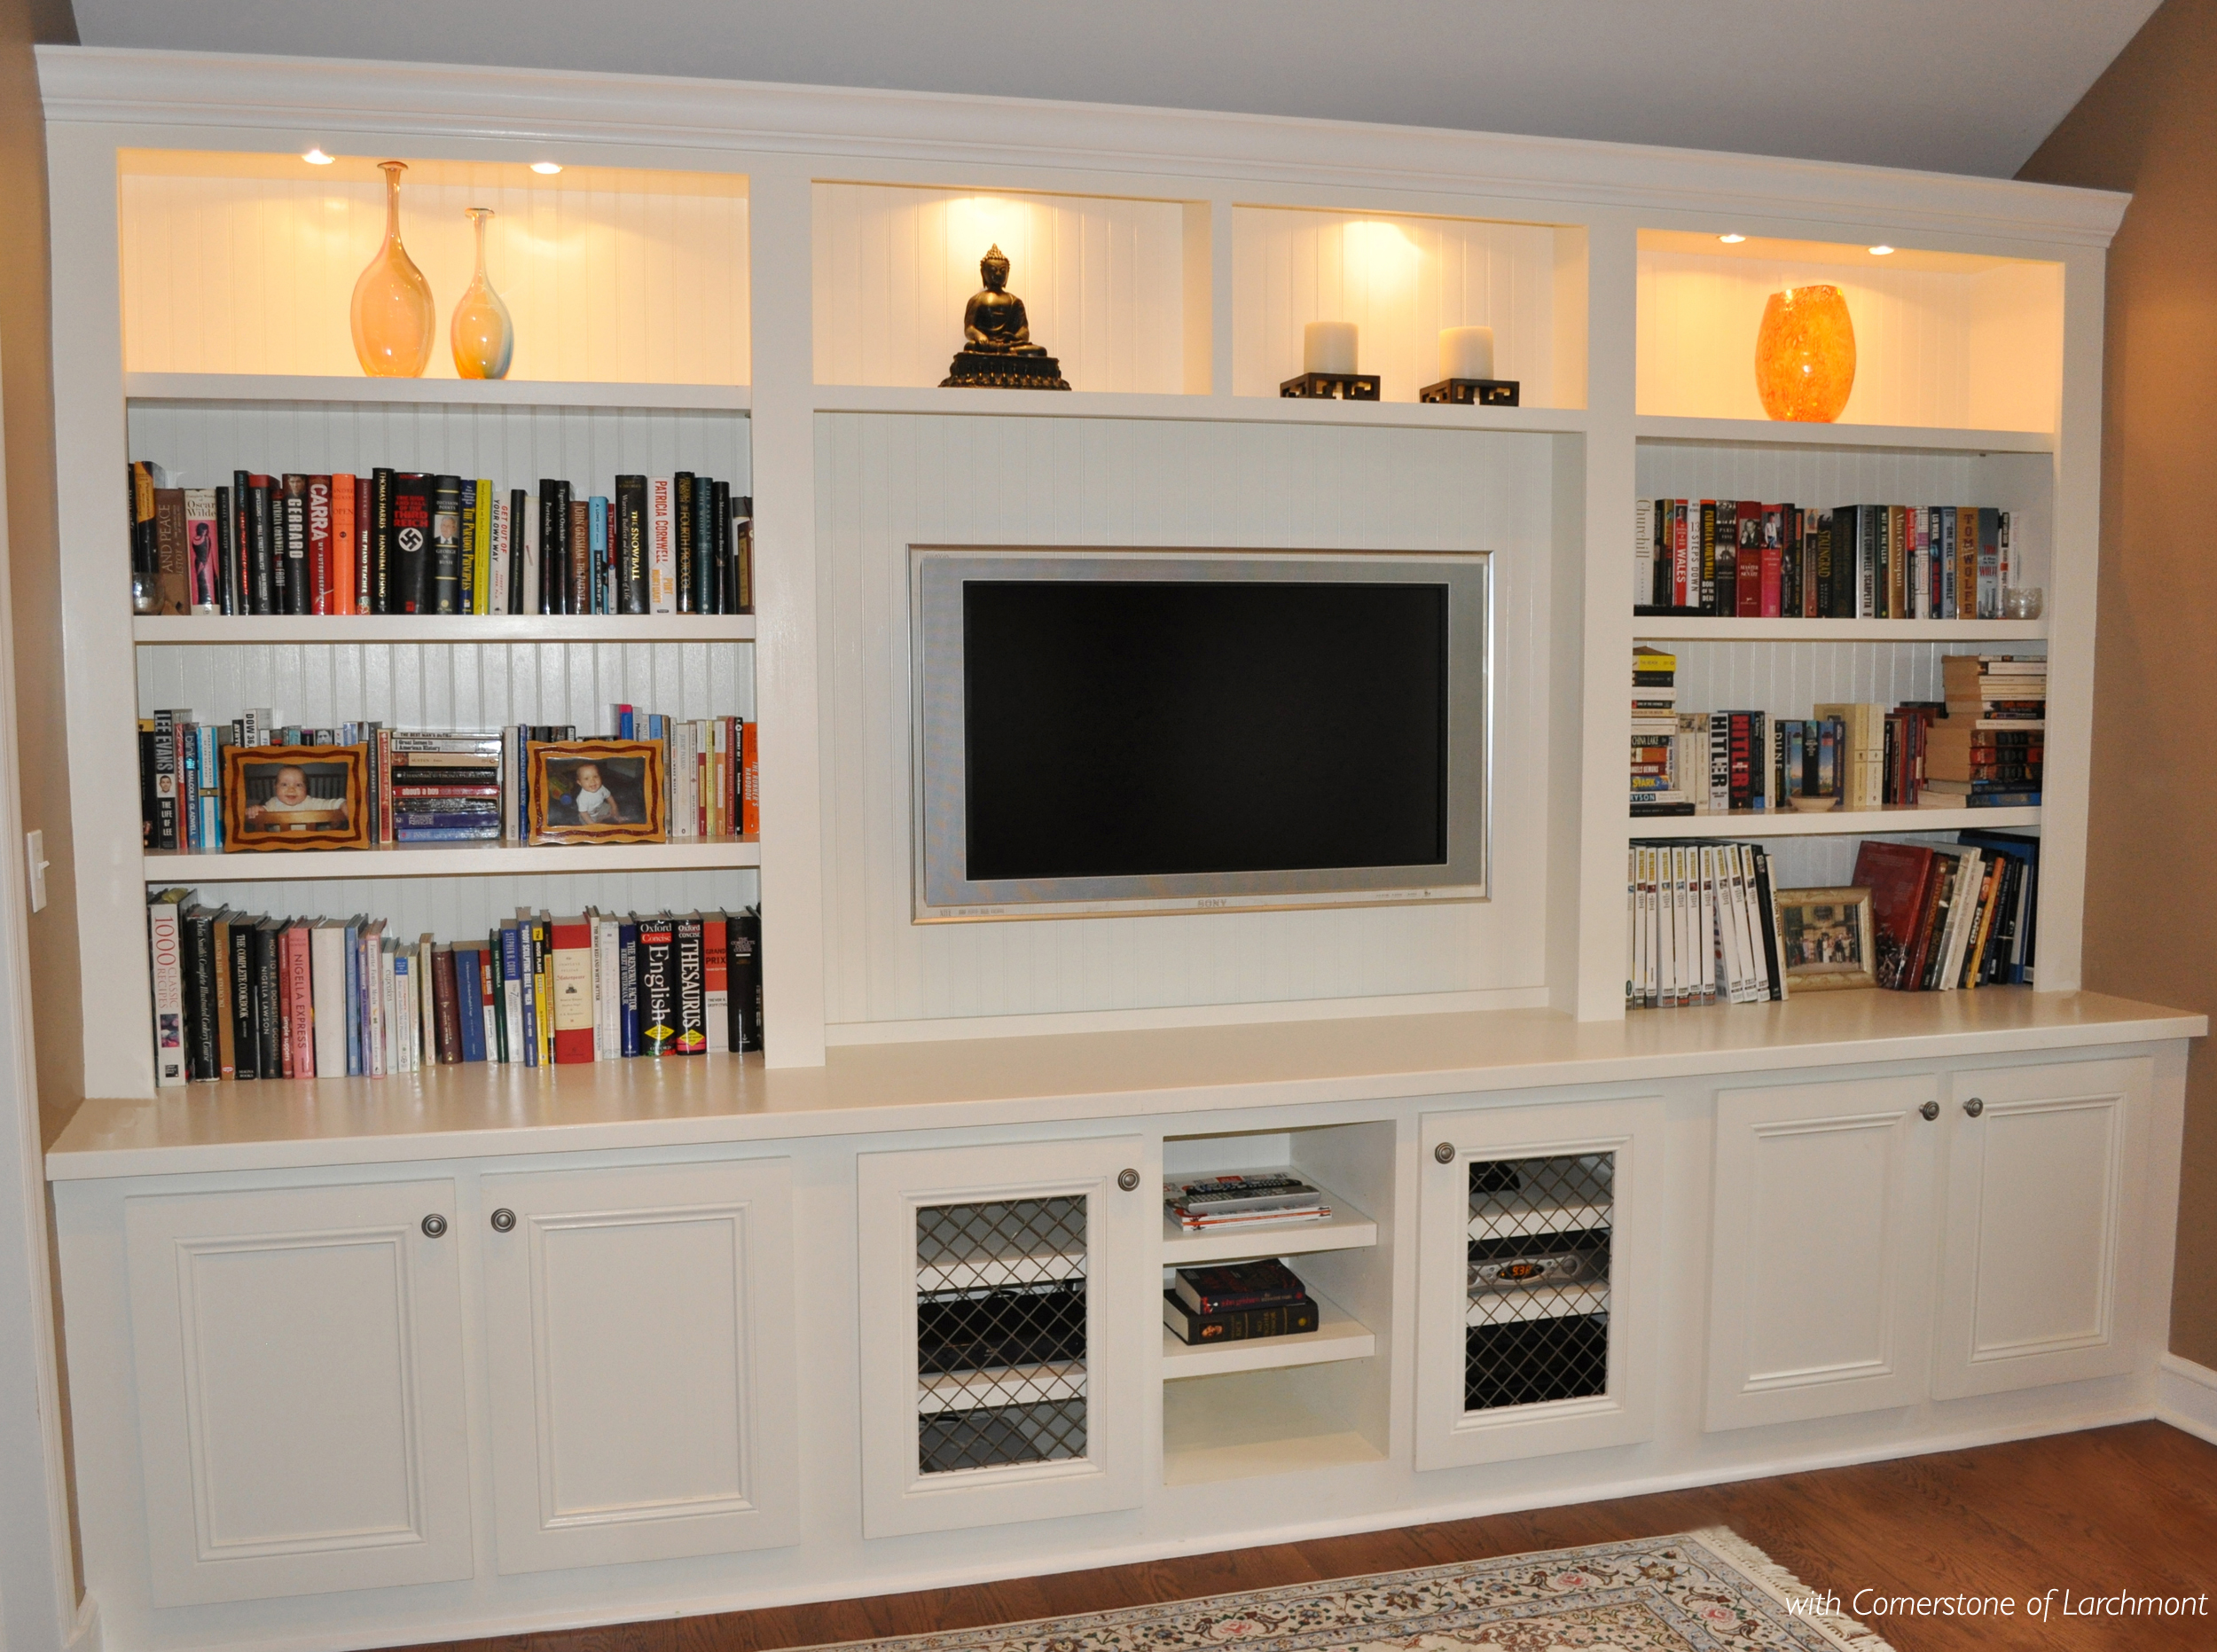 Family Room Built-in AFTER_Custom Millwork_Custom Cabinets_Bookshelves_Kim A Mitchell Interior Designer with Cornerstone of Larchmont.jpg